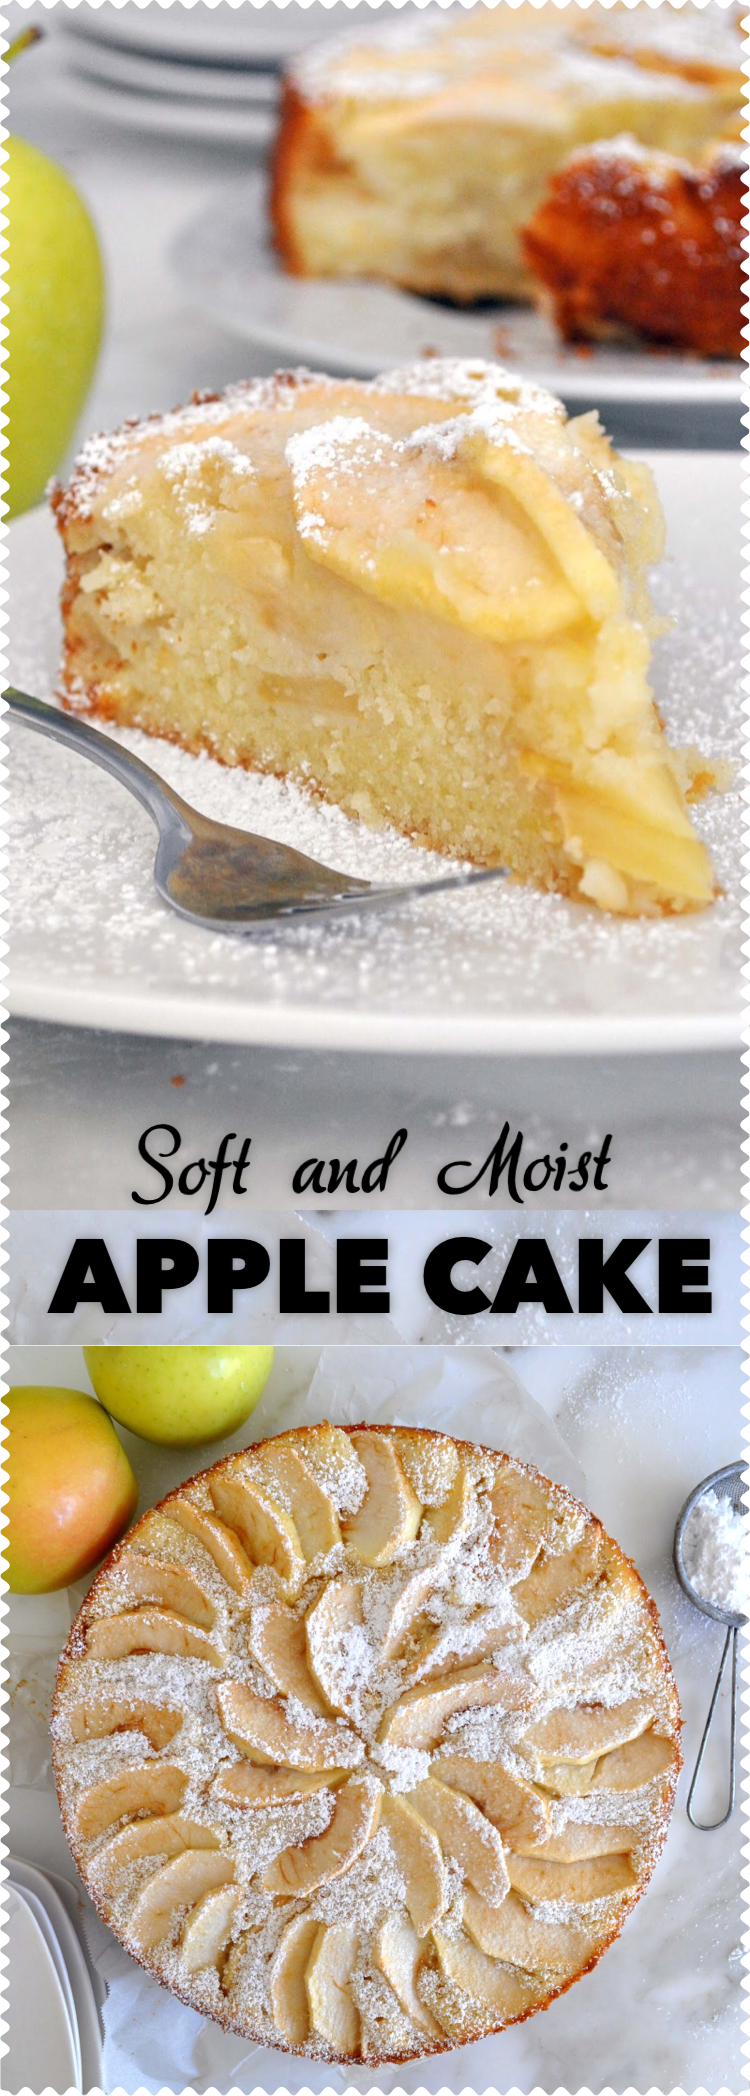 10 cake Apple easy ideas